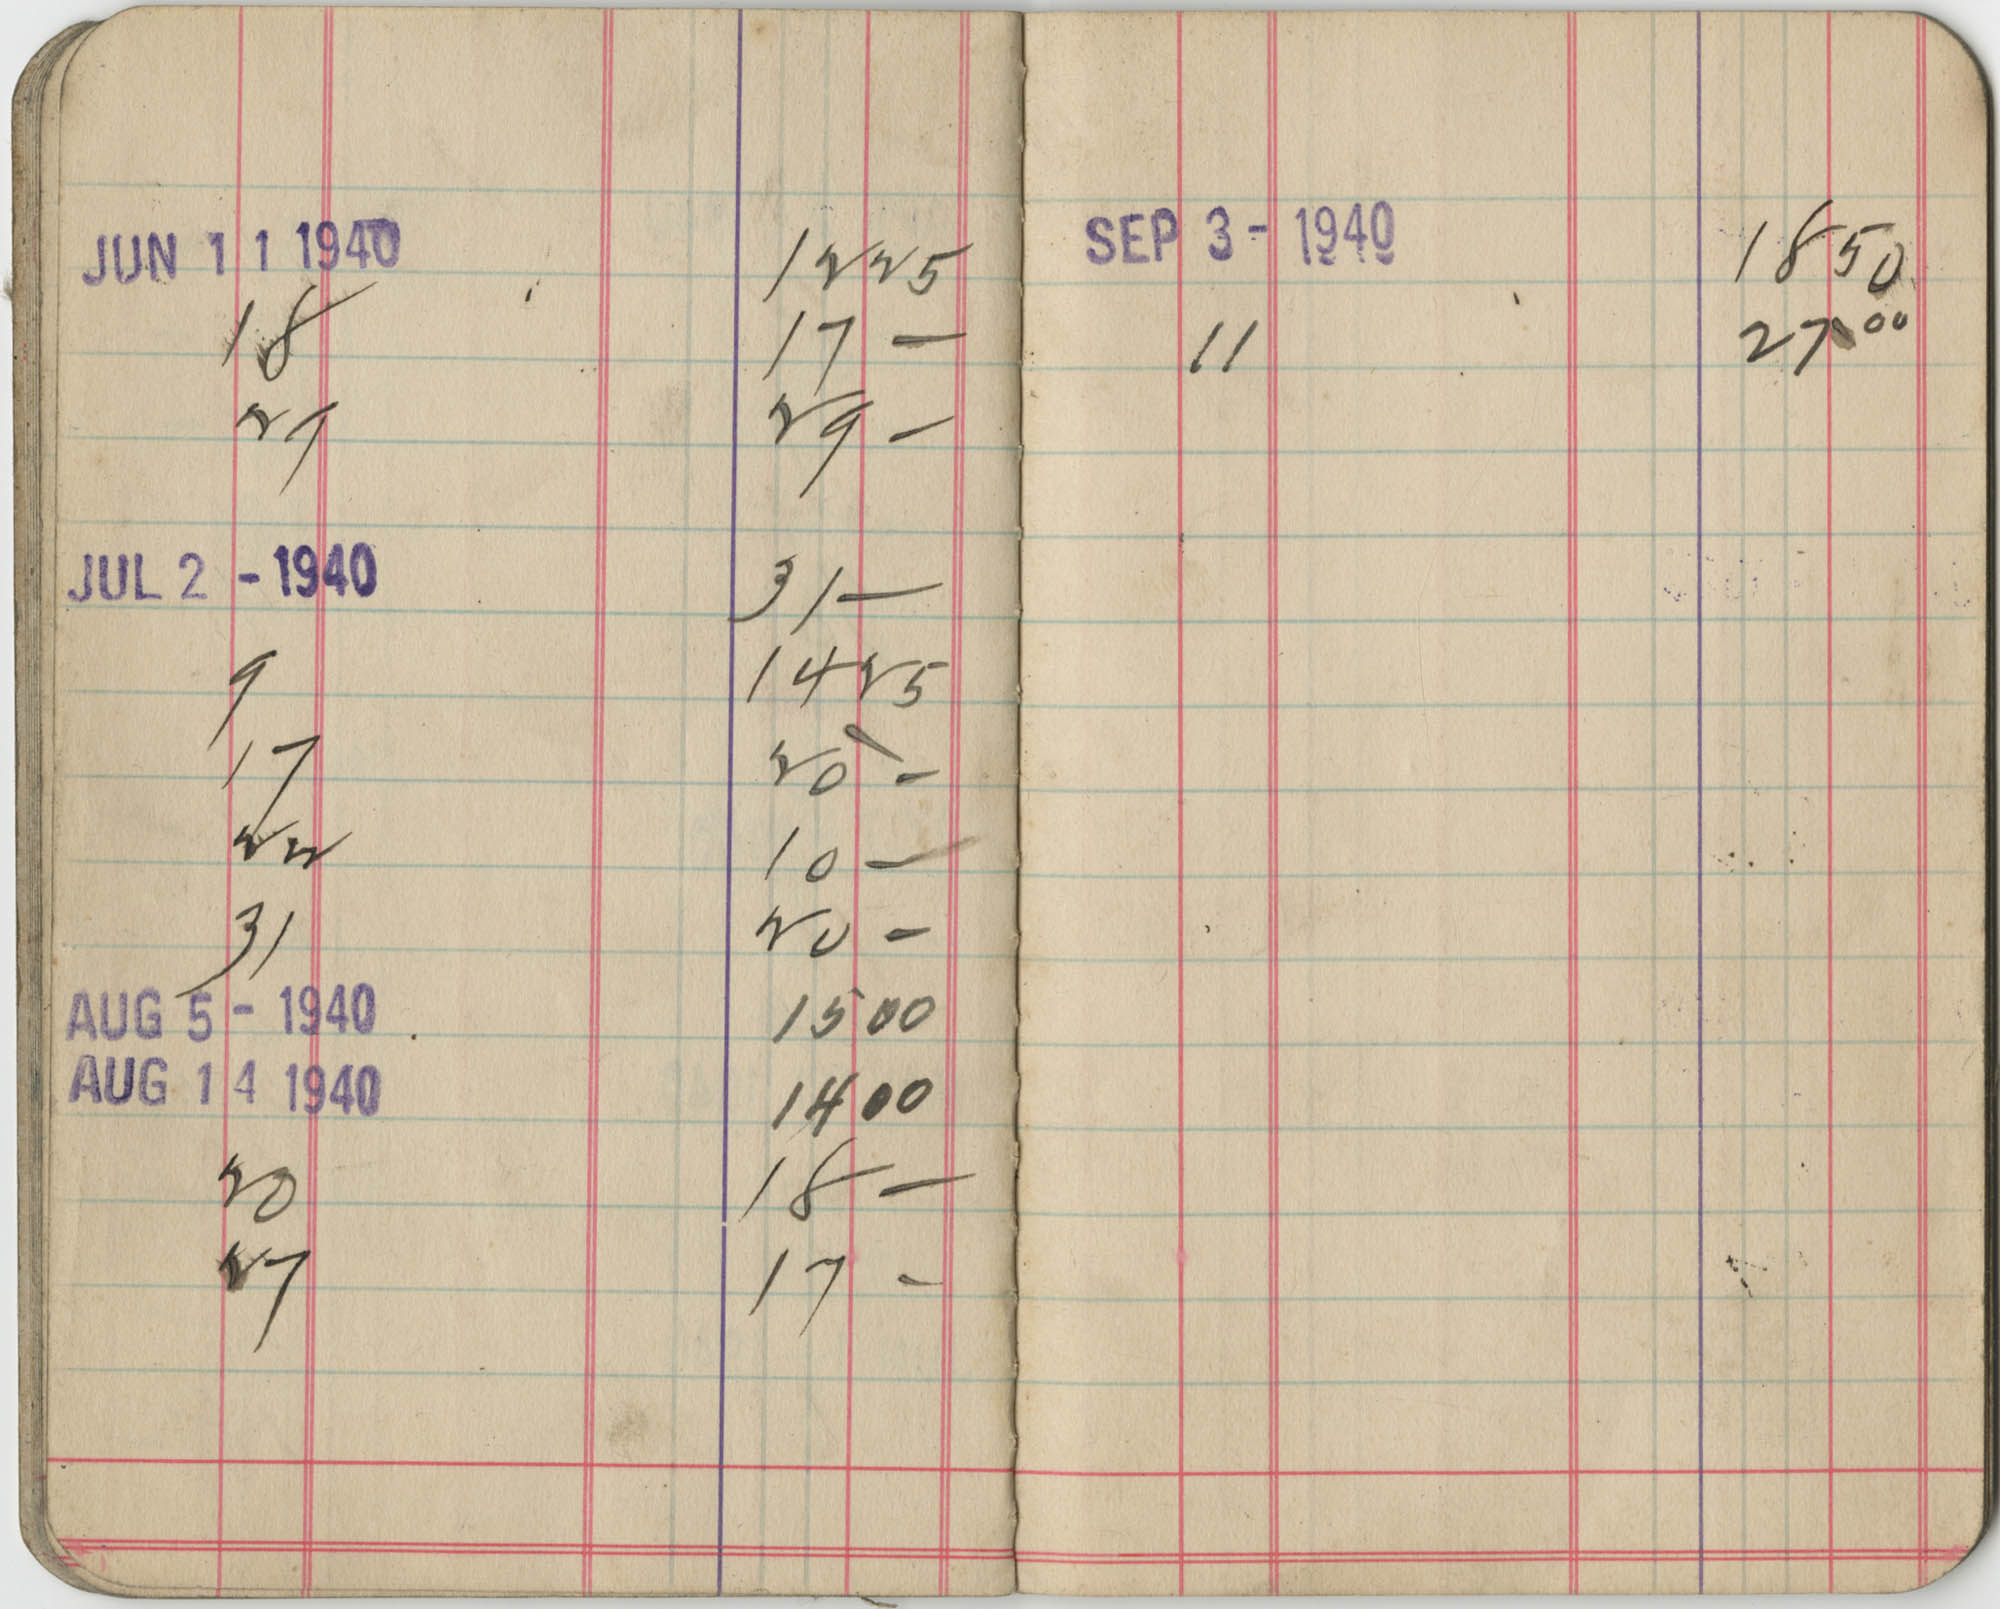 Carolina Savings Bank Account Book for the Y.W.C.A., Coming Street Branch, Pages 13 and 14